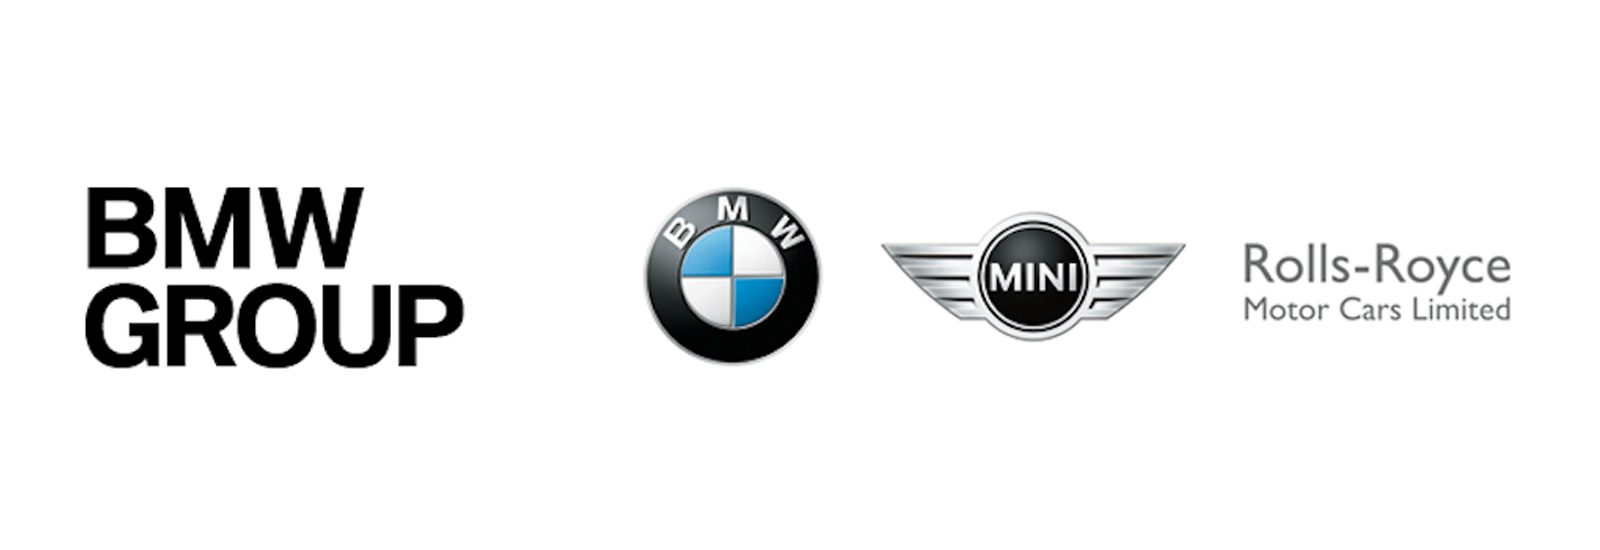 Marcas de coches bmw-group